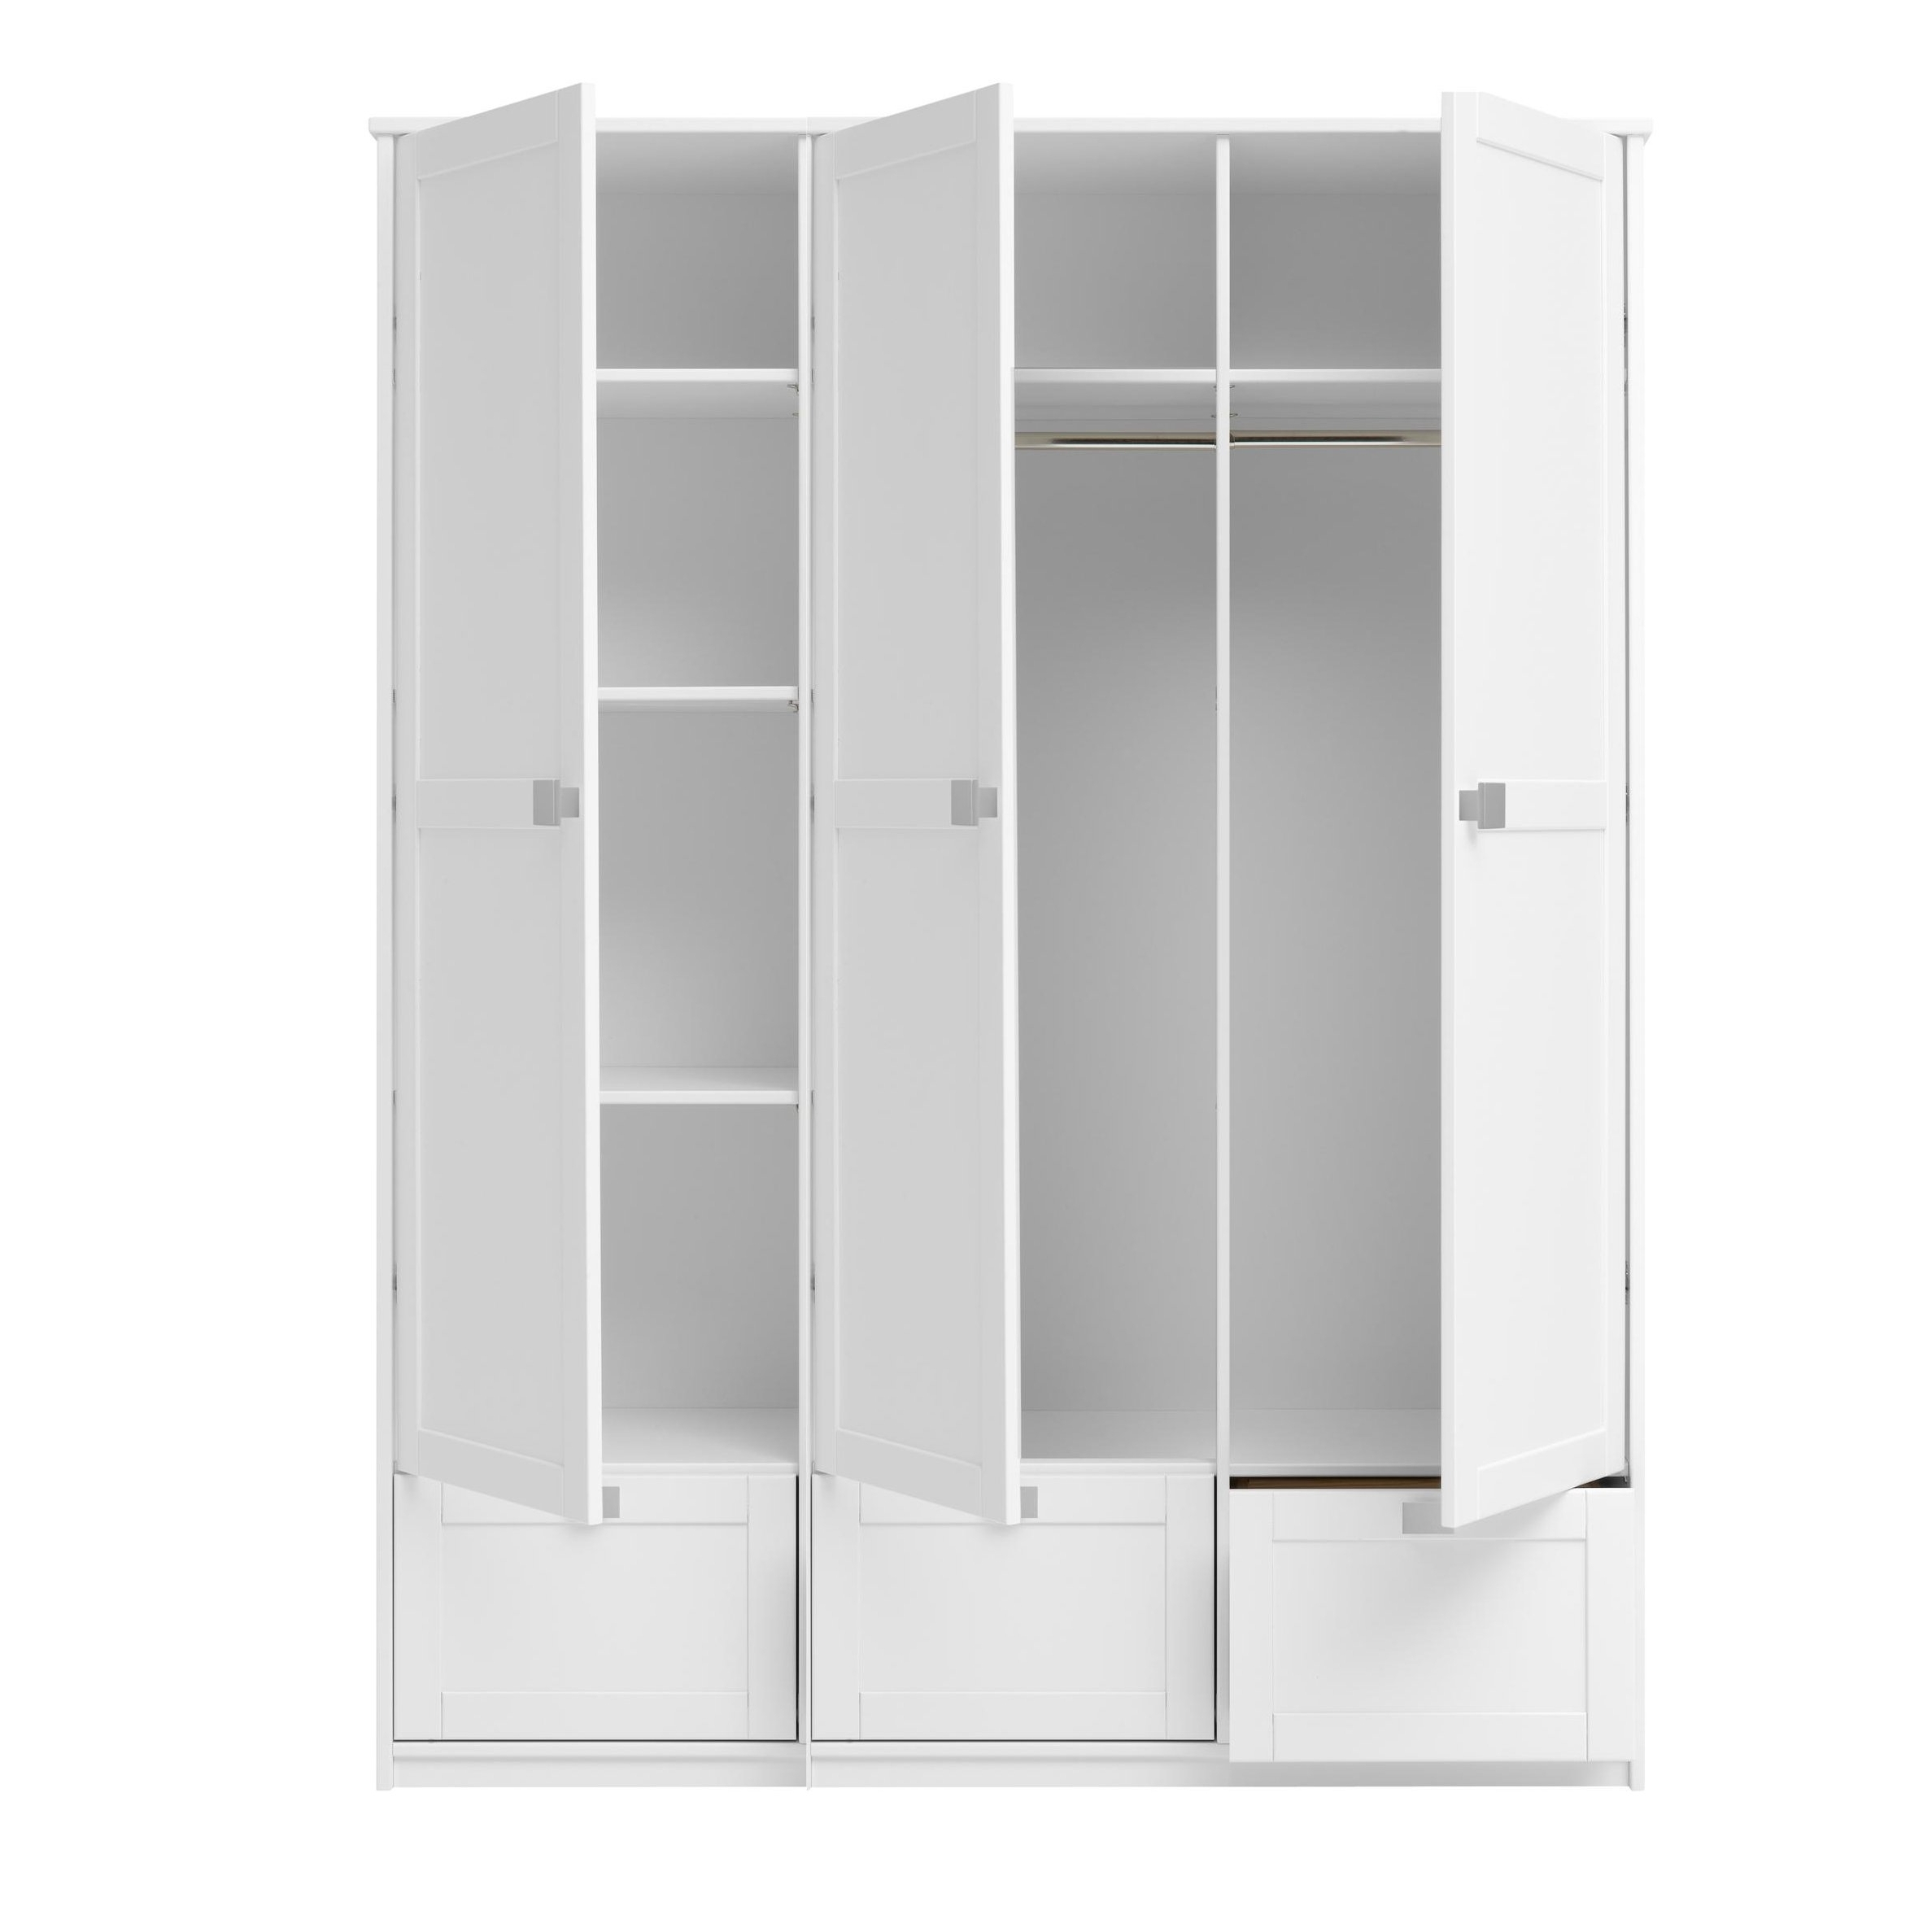 2018 White 3 Door Wardrobe With Drawers And Mirror Large Corner Argos 2 For 3 Door White Wardrobes With Drawers (View 11 of 15)